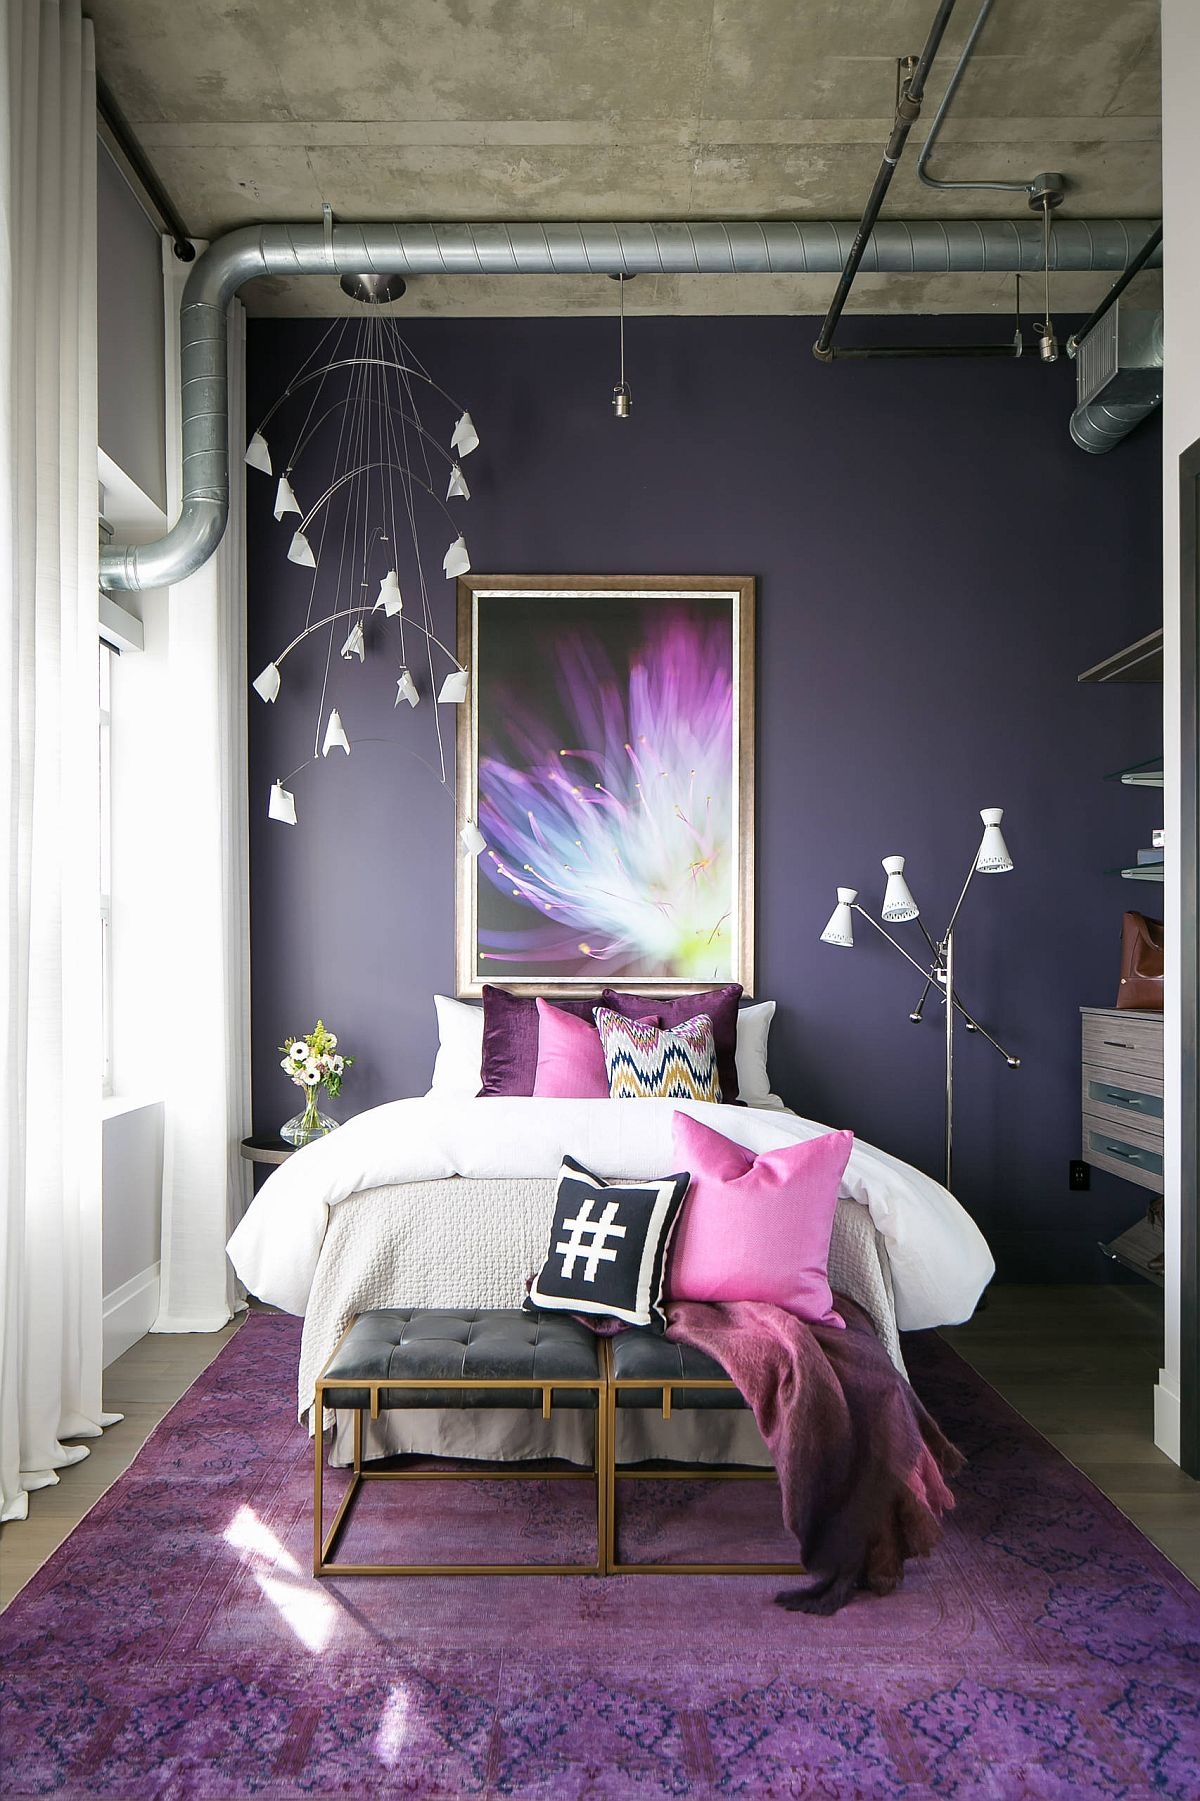 Concrete-ceiling-and-exposed-duct-pipes-bring-industrial-beauty-to-this-colorful-bedroom-in-violet-64727